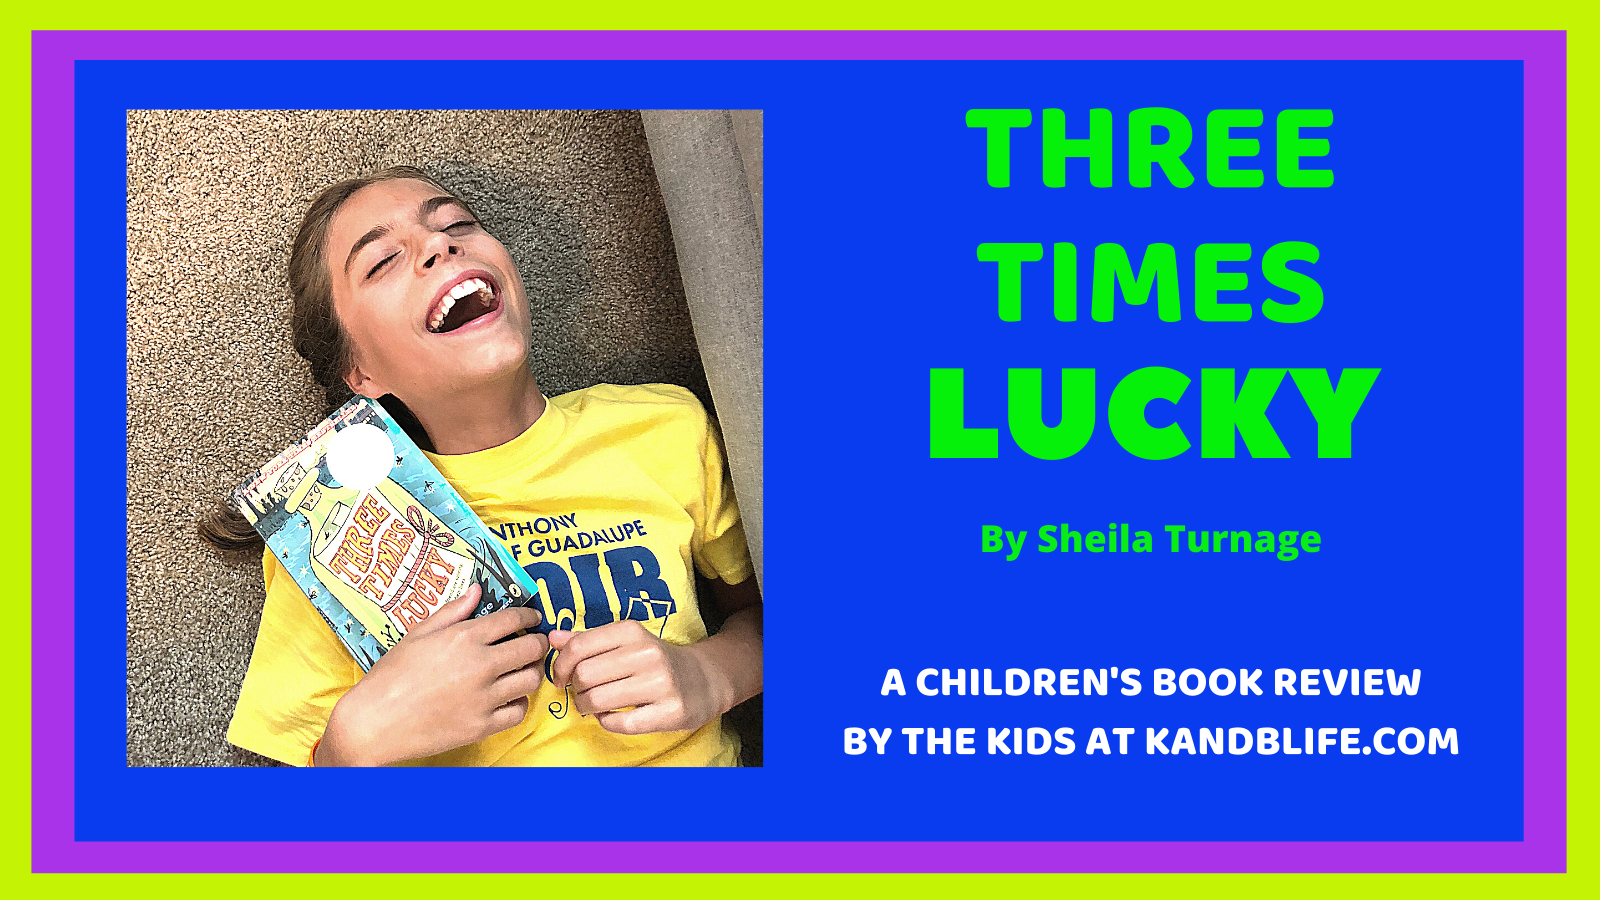 A book Review for the Three Times Lucky by Sheila Turnage.